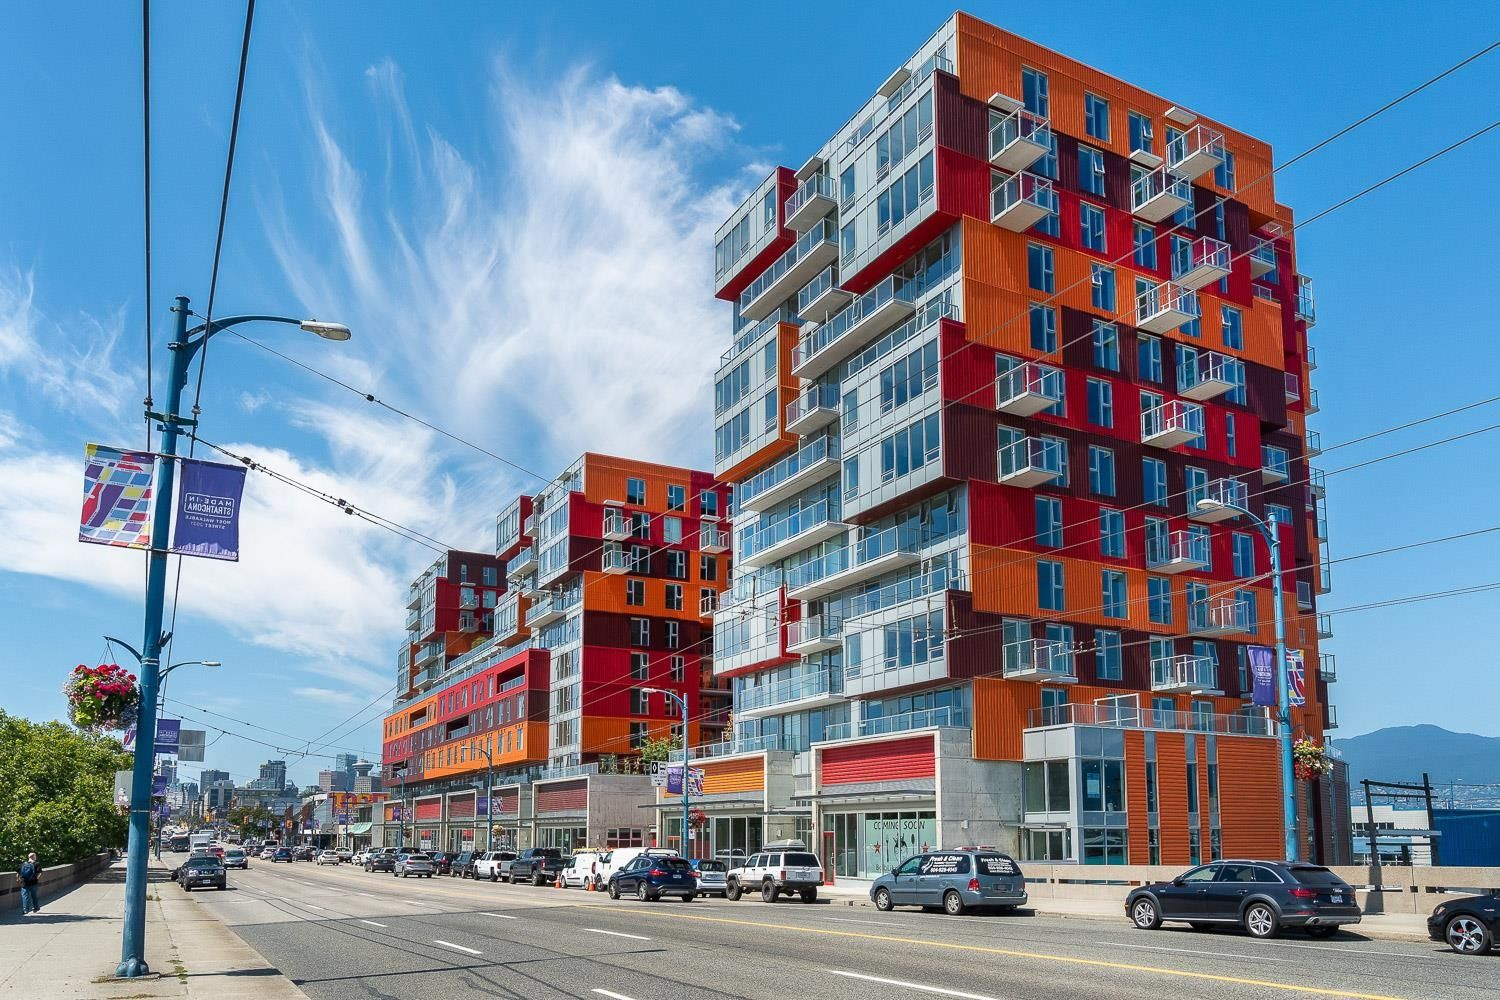 """Main Photo: PH9 955 E HASTINGS Street in Vancouver: Strathcona Condo for sale in """"Strathcona Village"""" (Vancouver East)  : MLS®# R2617989"""